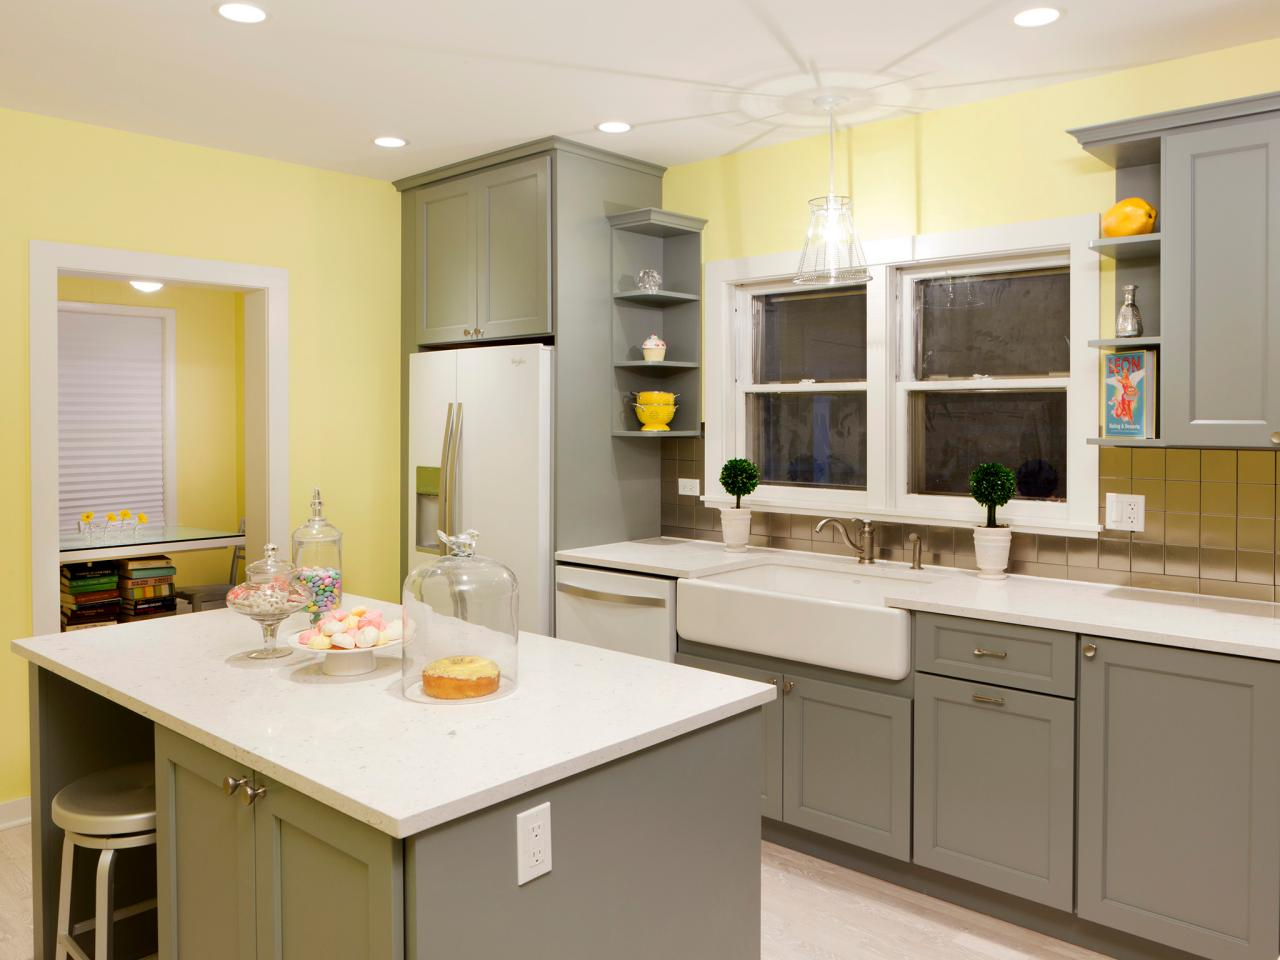 Image of: Pictures Of Quartz Countertops In Kitchens